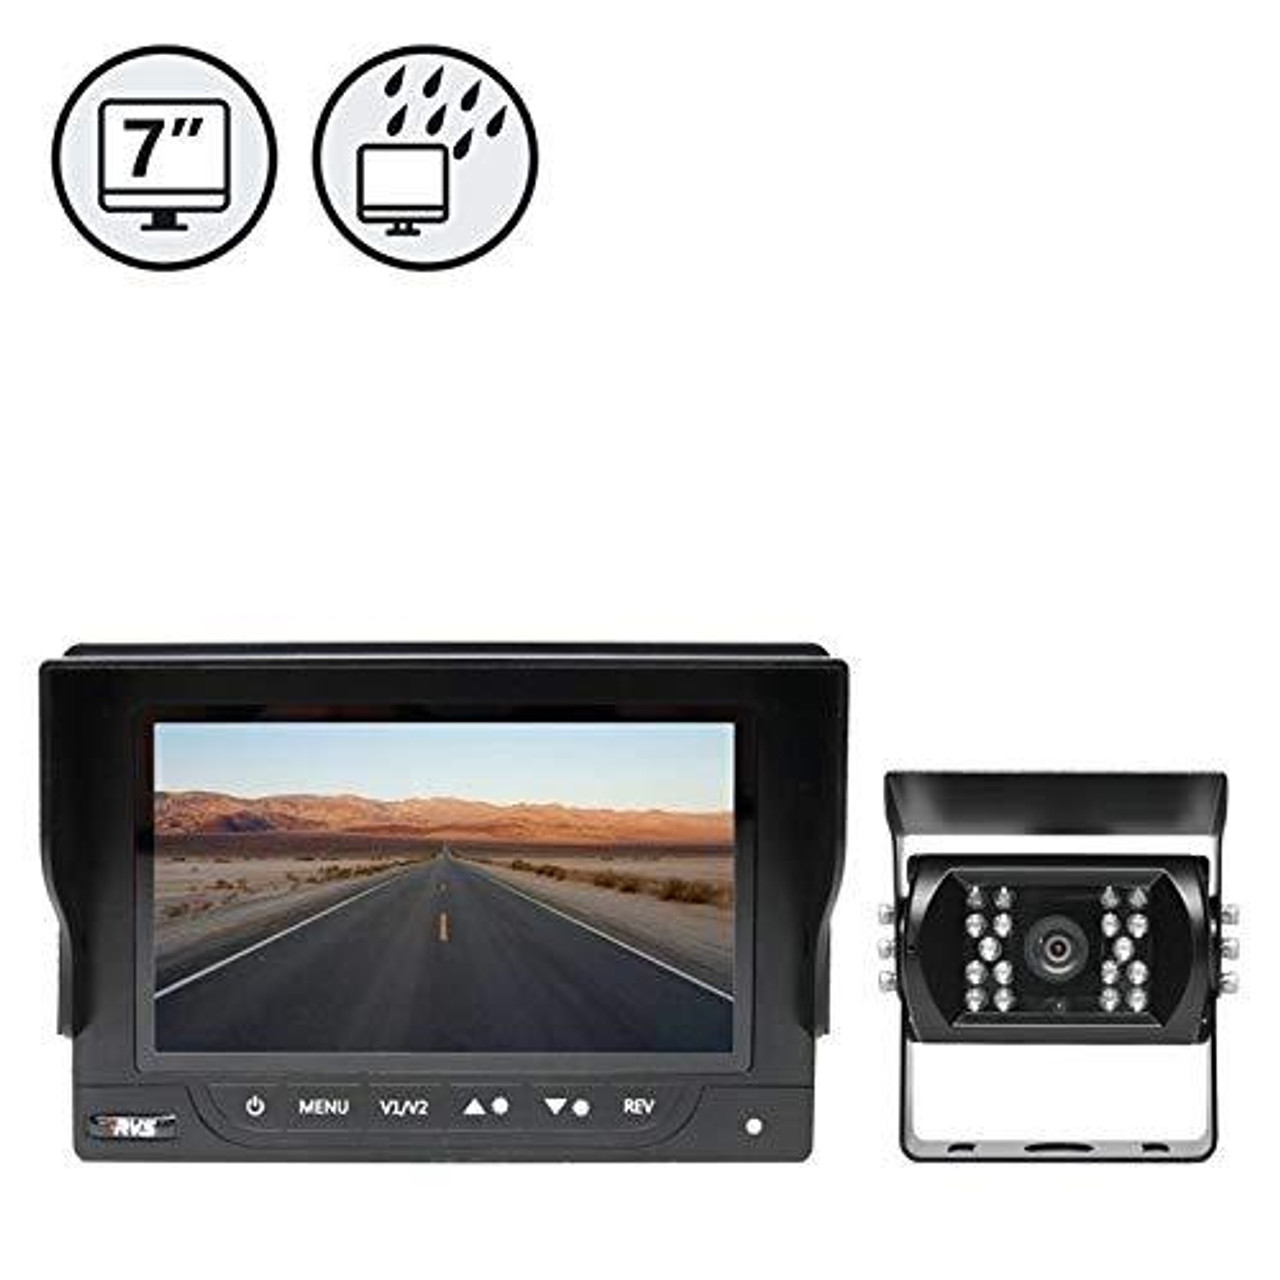 "7"" Waterproof Monitor, Backup Camera, 66ft Cable"